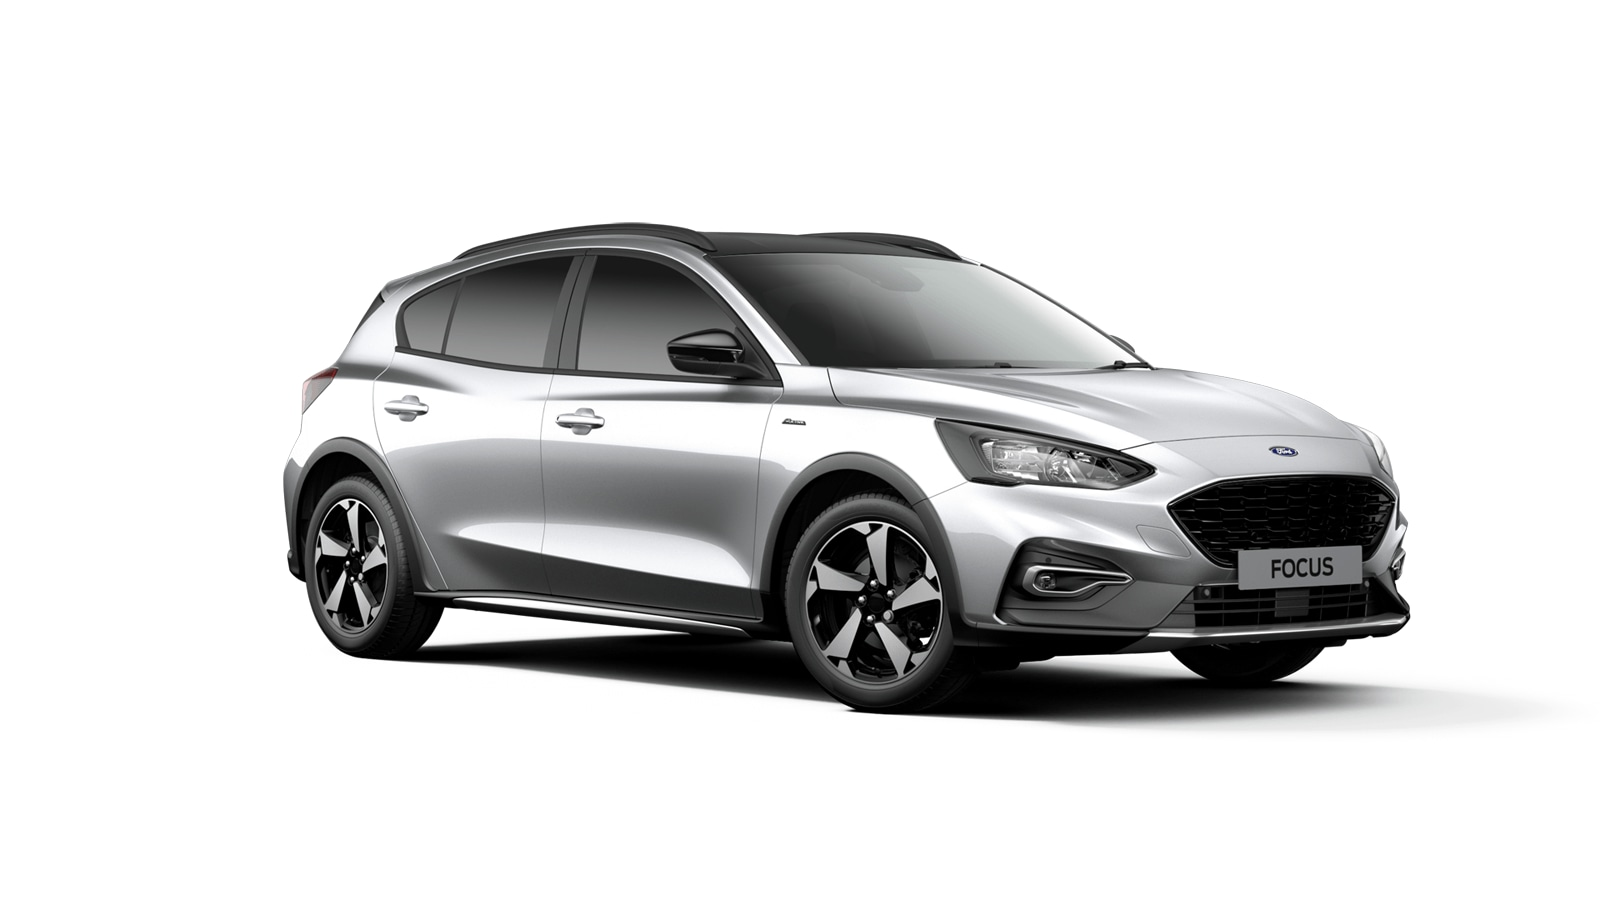 NEW FOCUS MHEV Active Edition mHEV